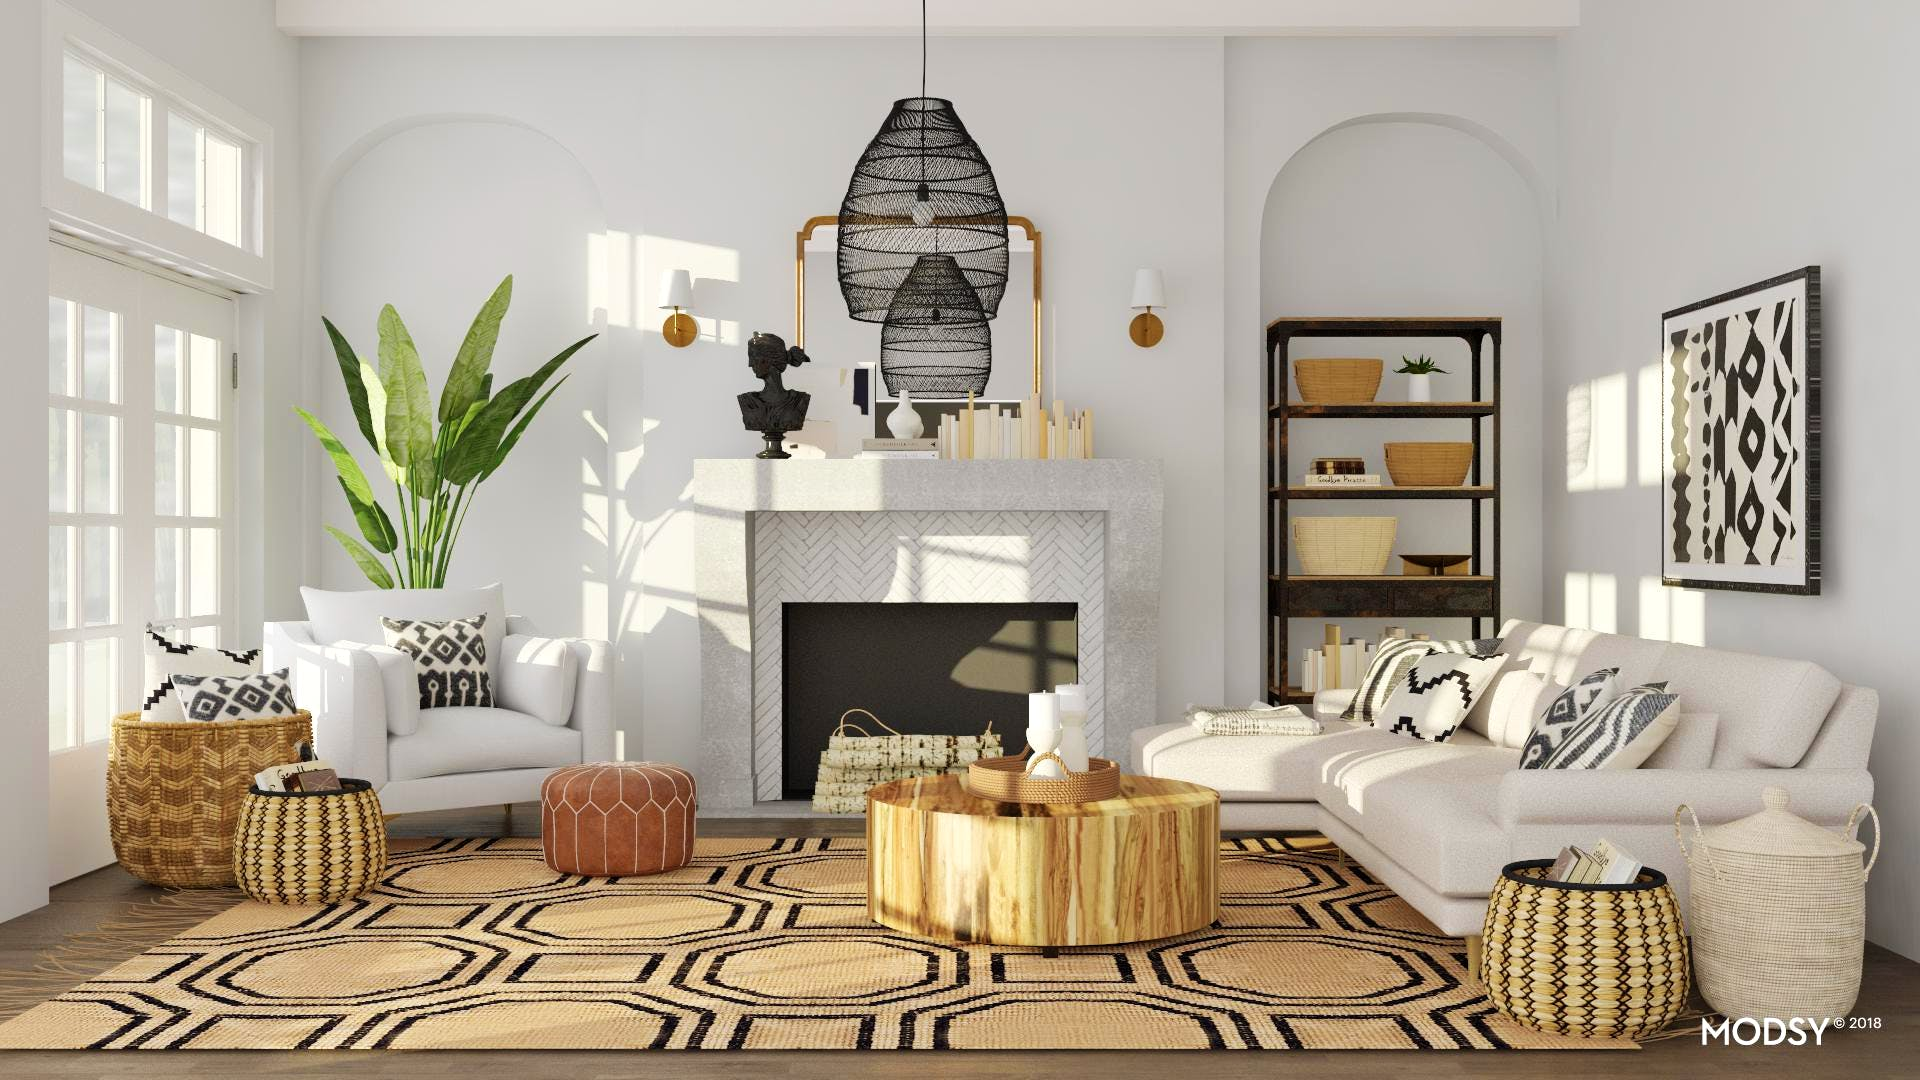 A Neutral Living Room Filled With Natural Materials Modern Style Living Room Design Ideas